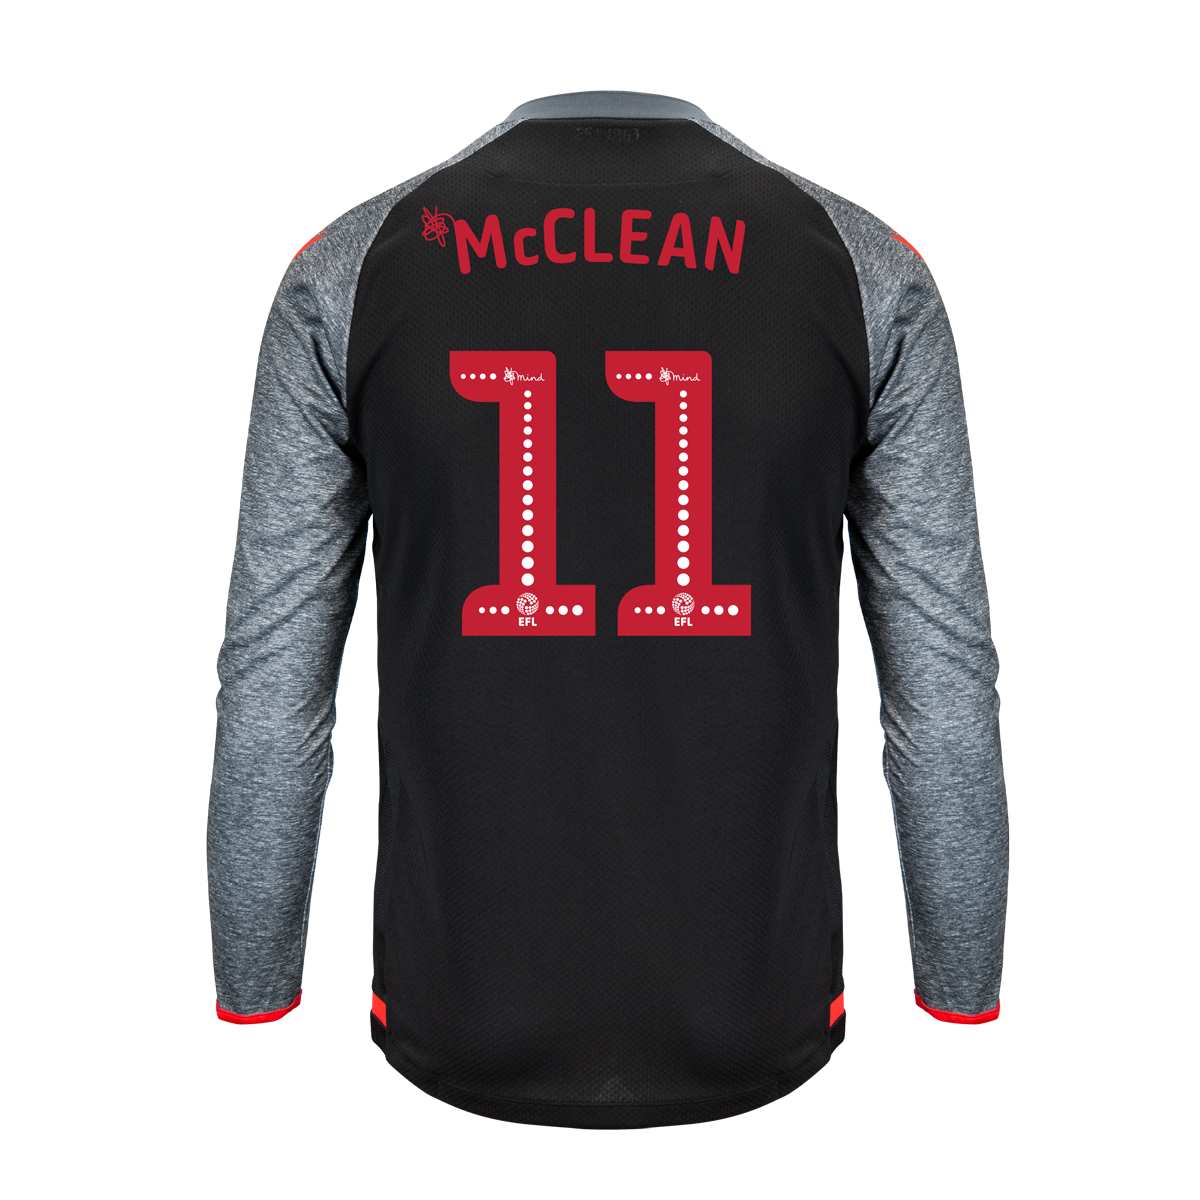 2019/20 Adult Away LS Shirt - McClean